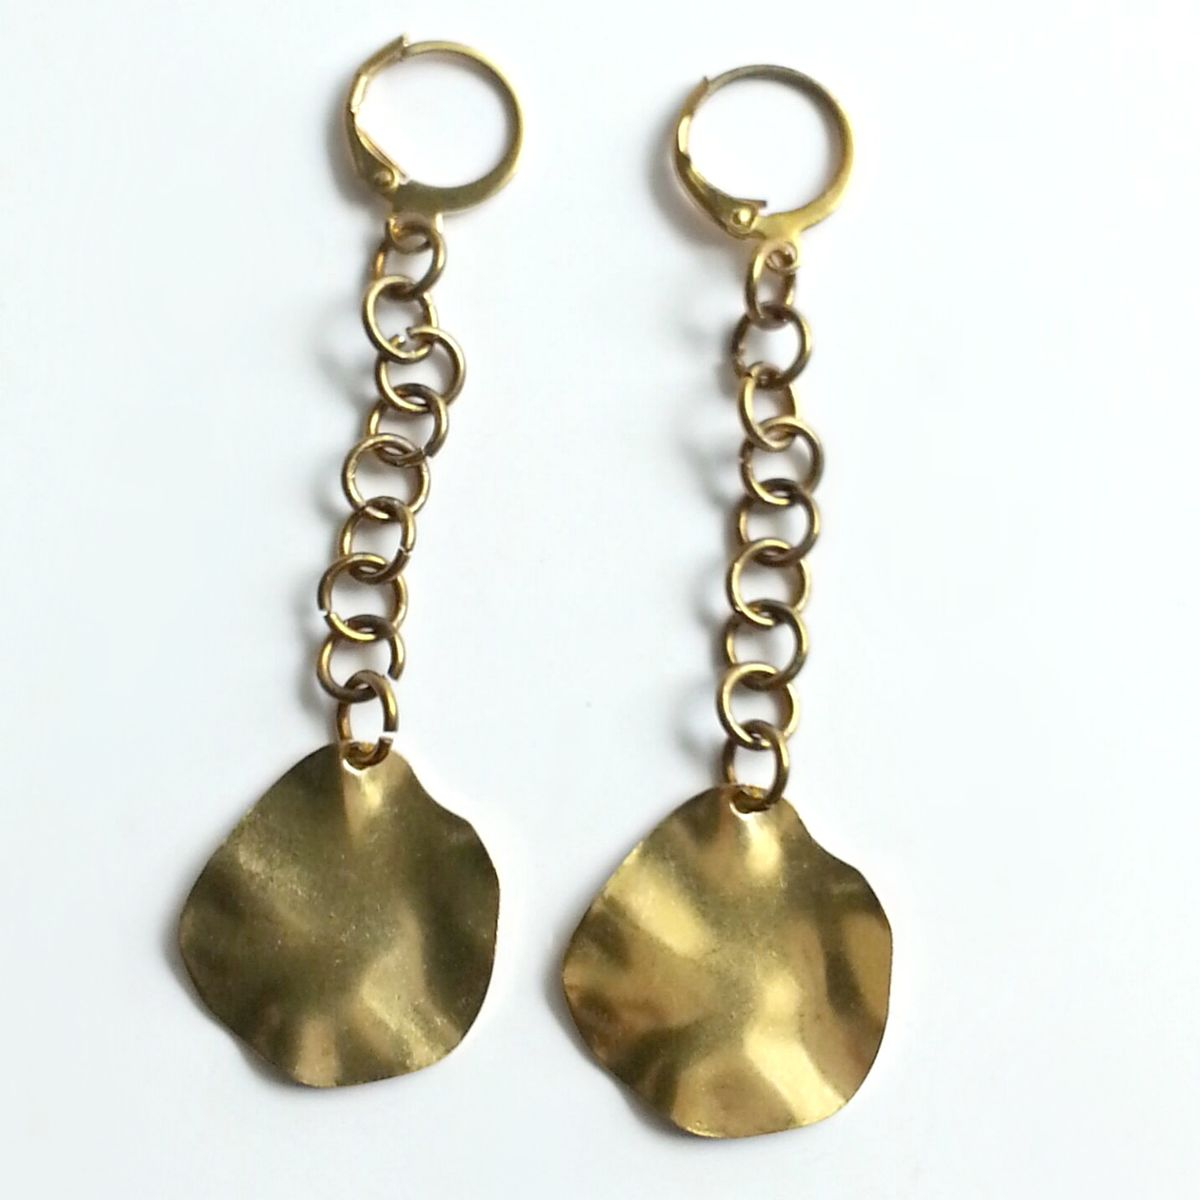 Wavy Disk Dangle Earrings - product images  of